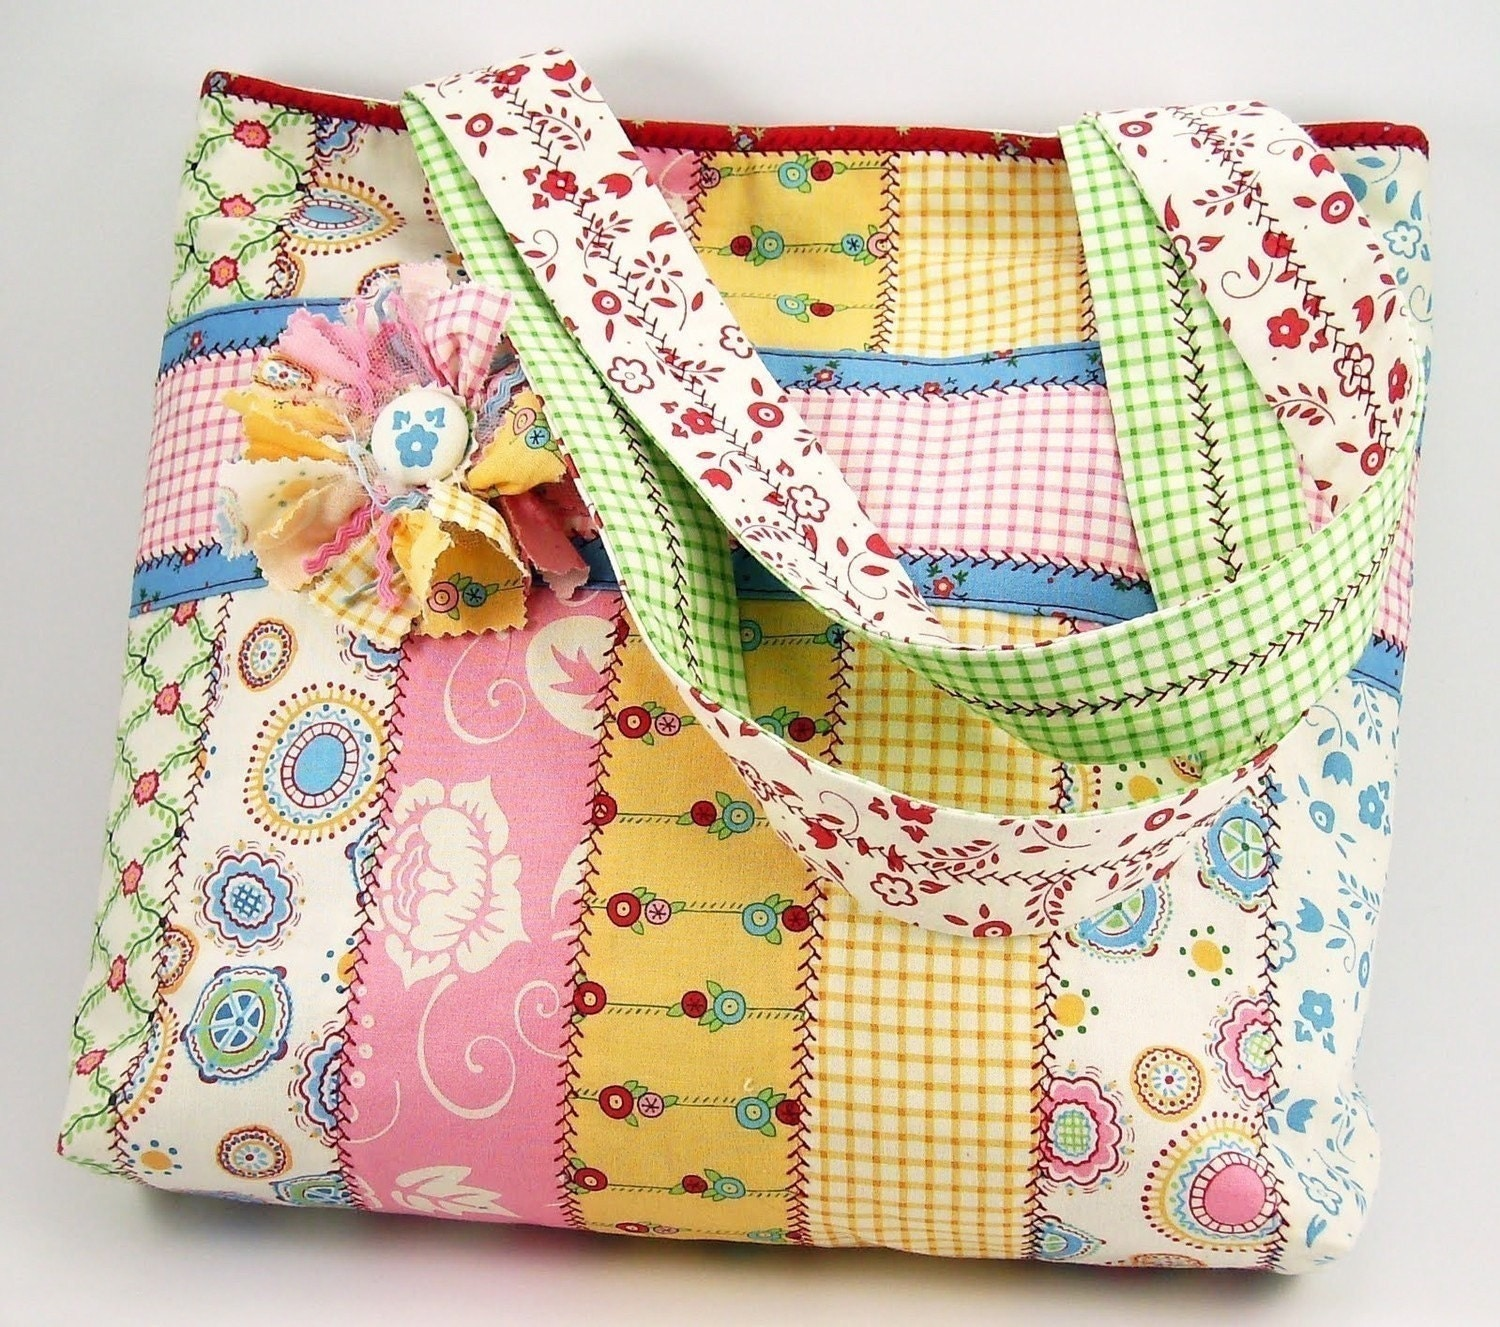 Jelly Roll Tote Bag Sewing Pattern with by SundayGirlDesigns